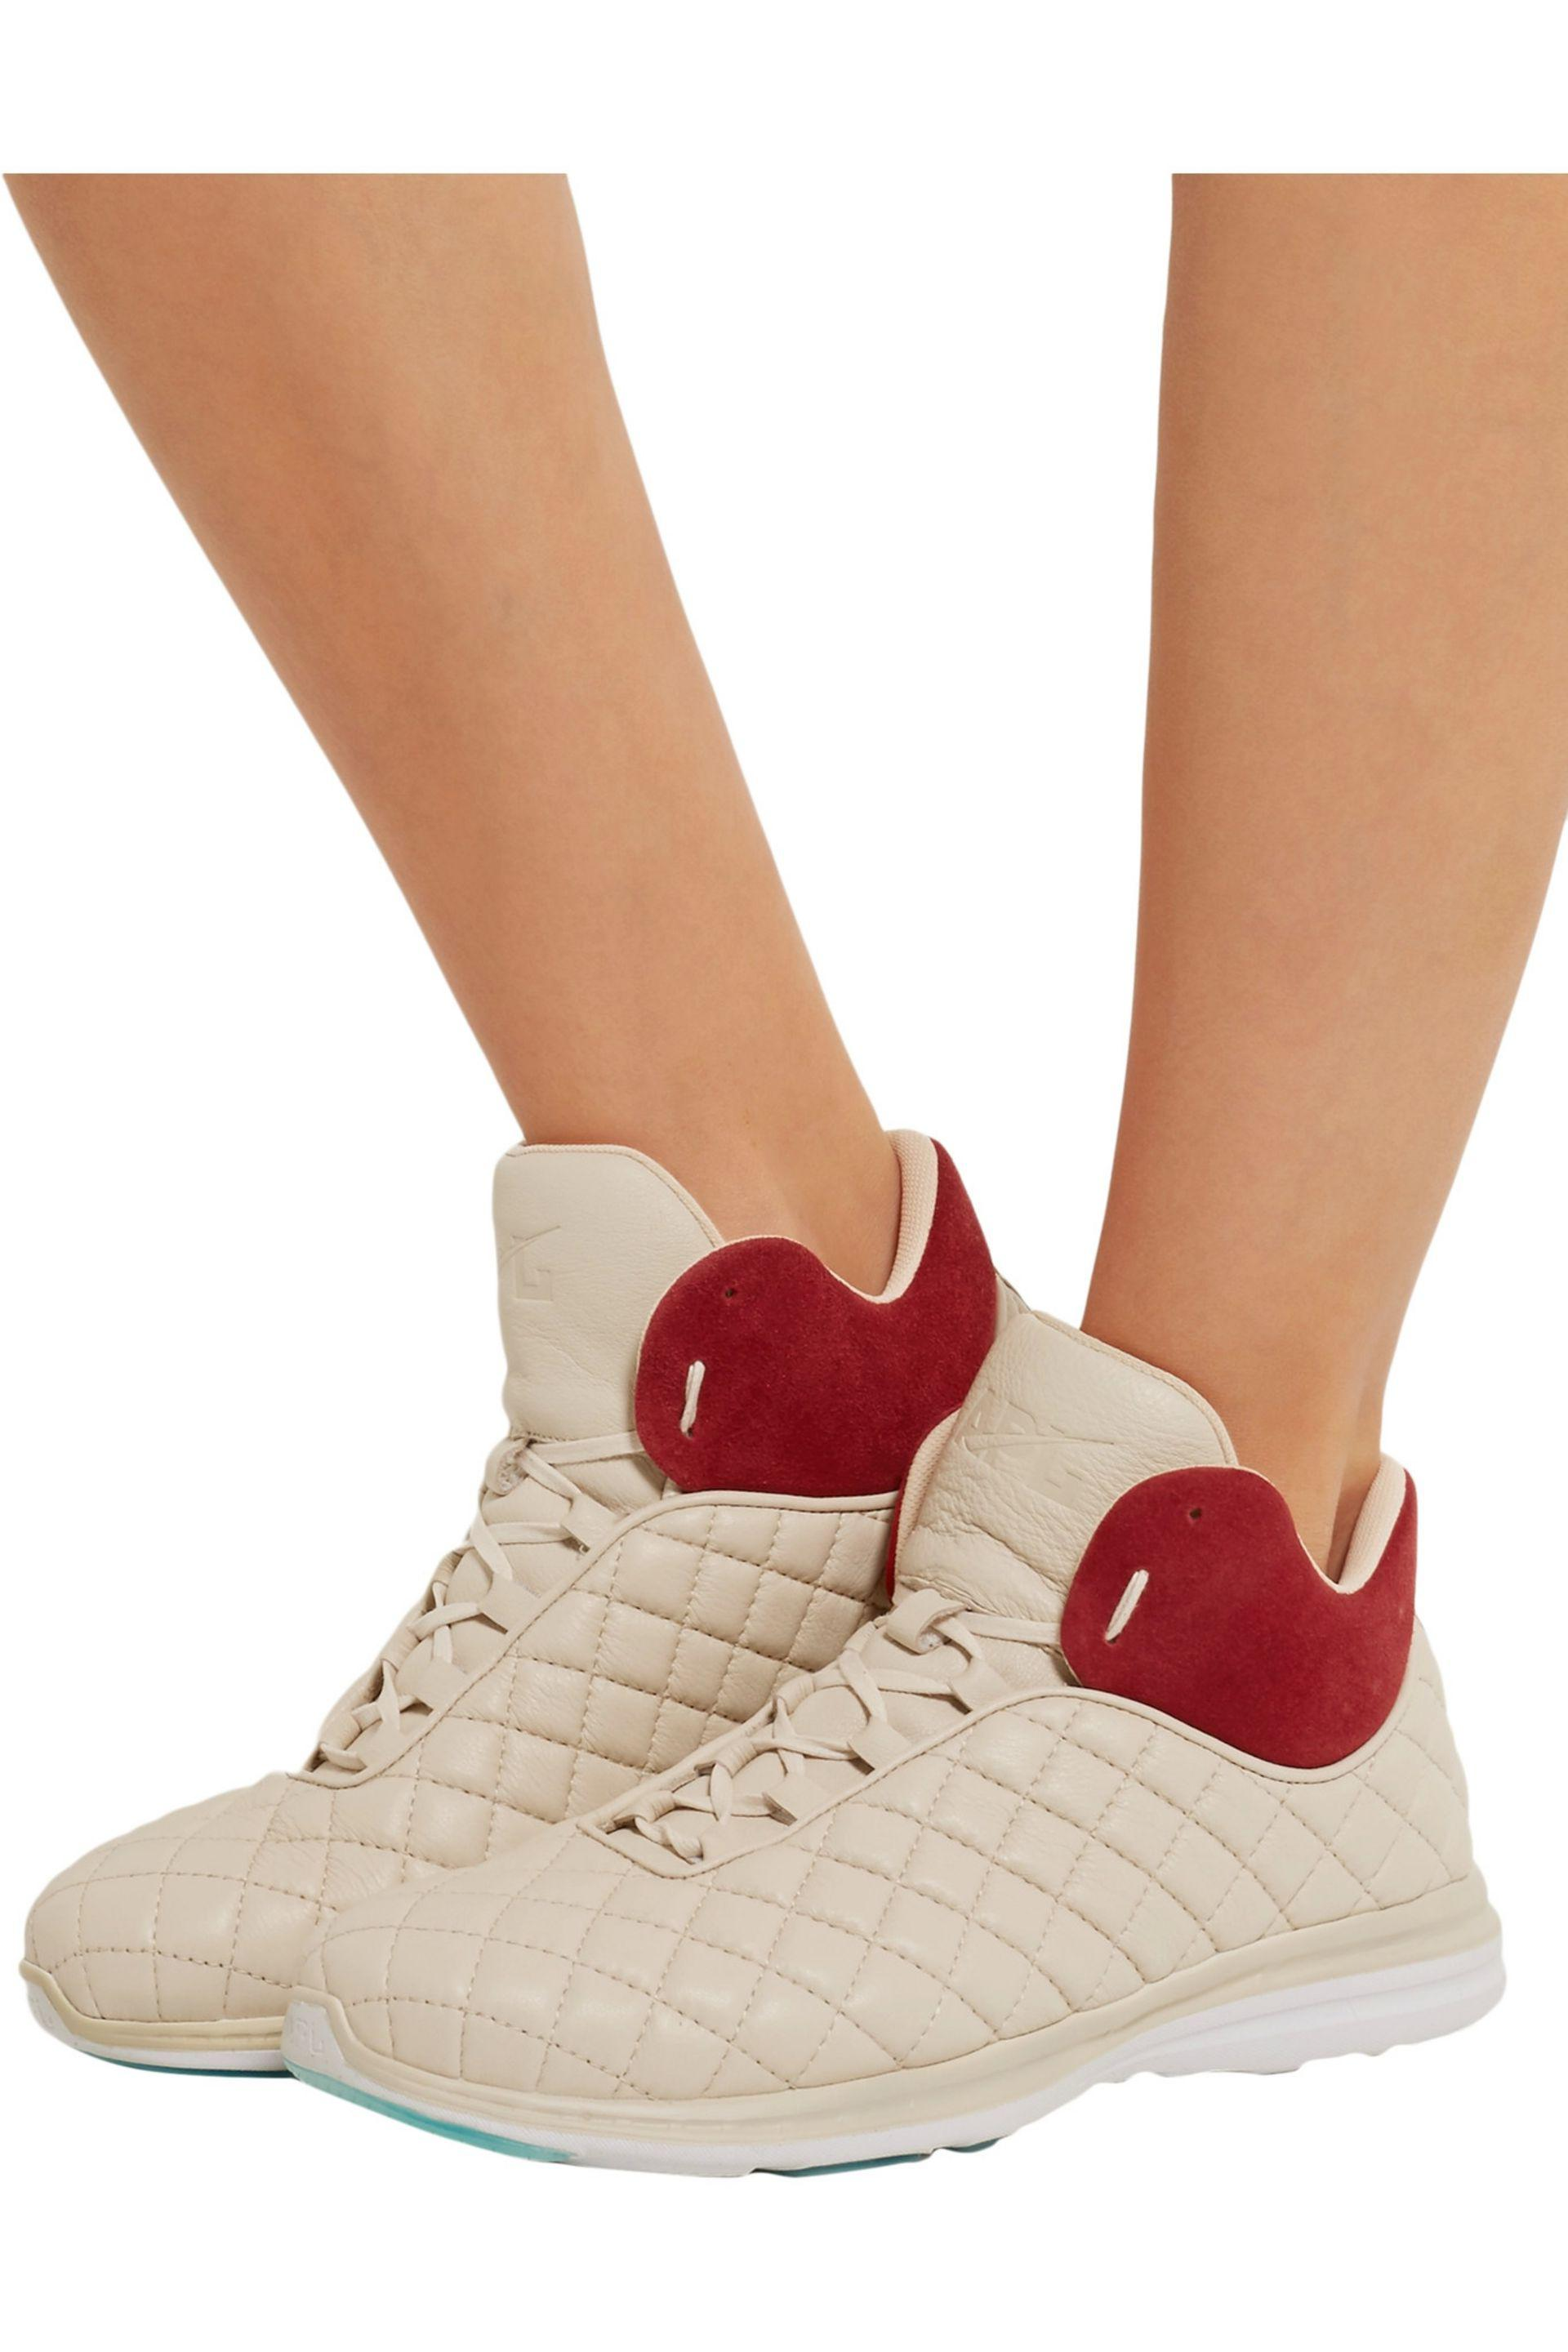 APL Shoes Lusso Quilted Leather High